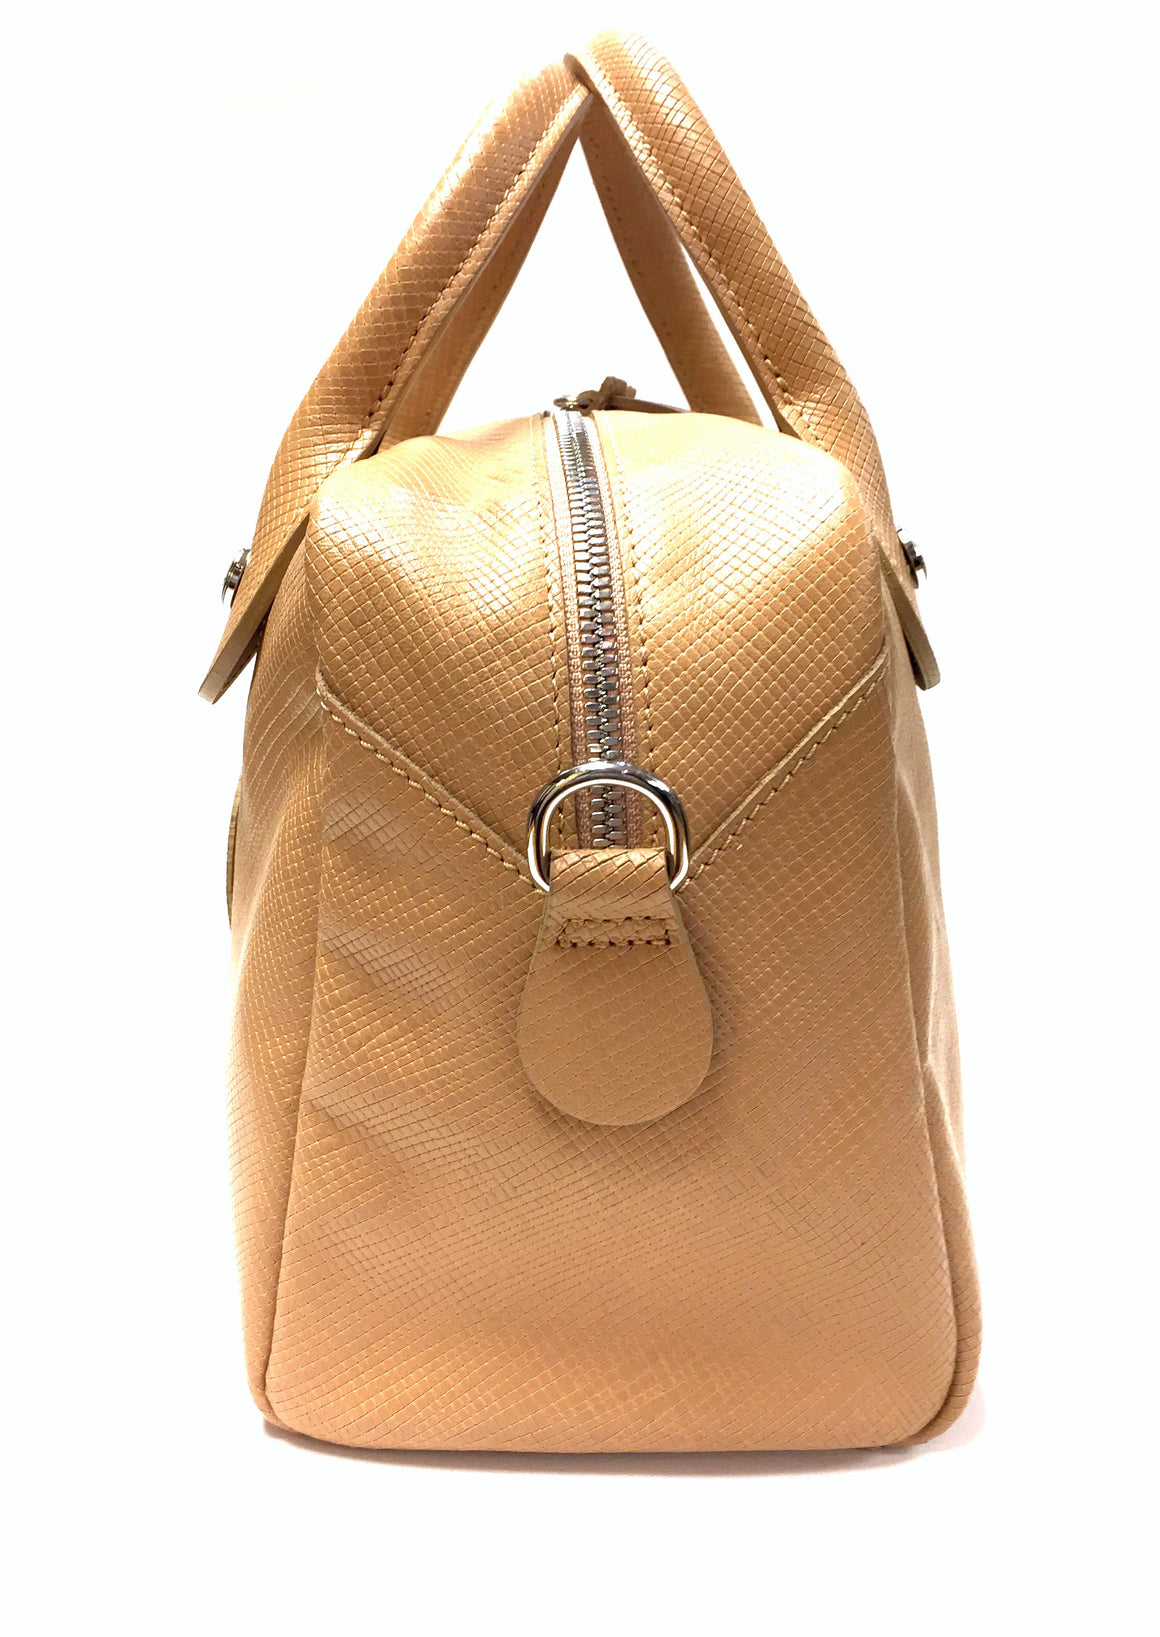 LONGCHAMP  Tan Textured Leather Small Duffle Satchel Hand Bag